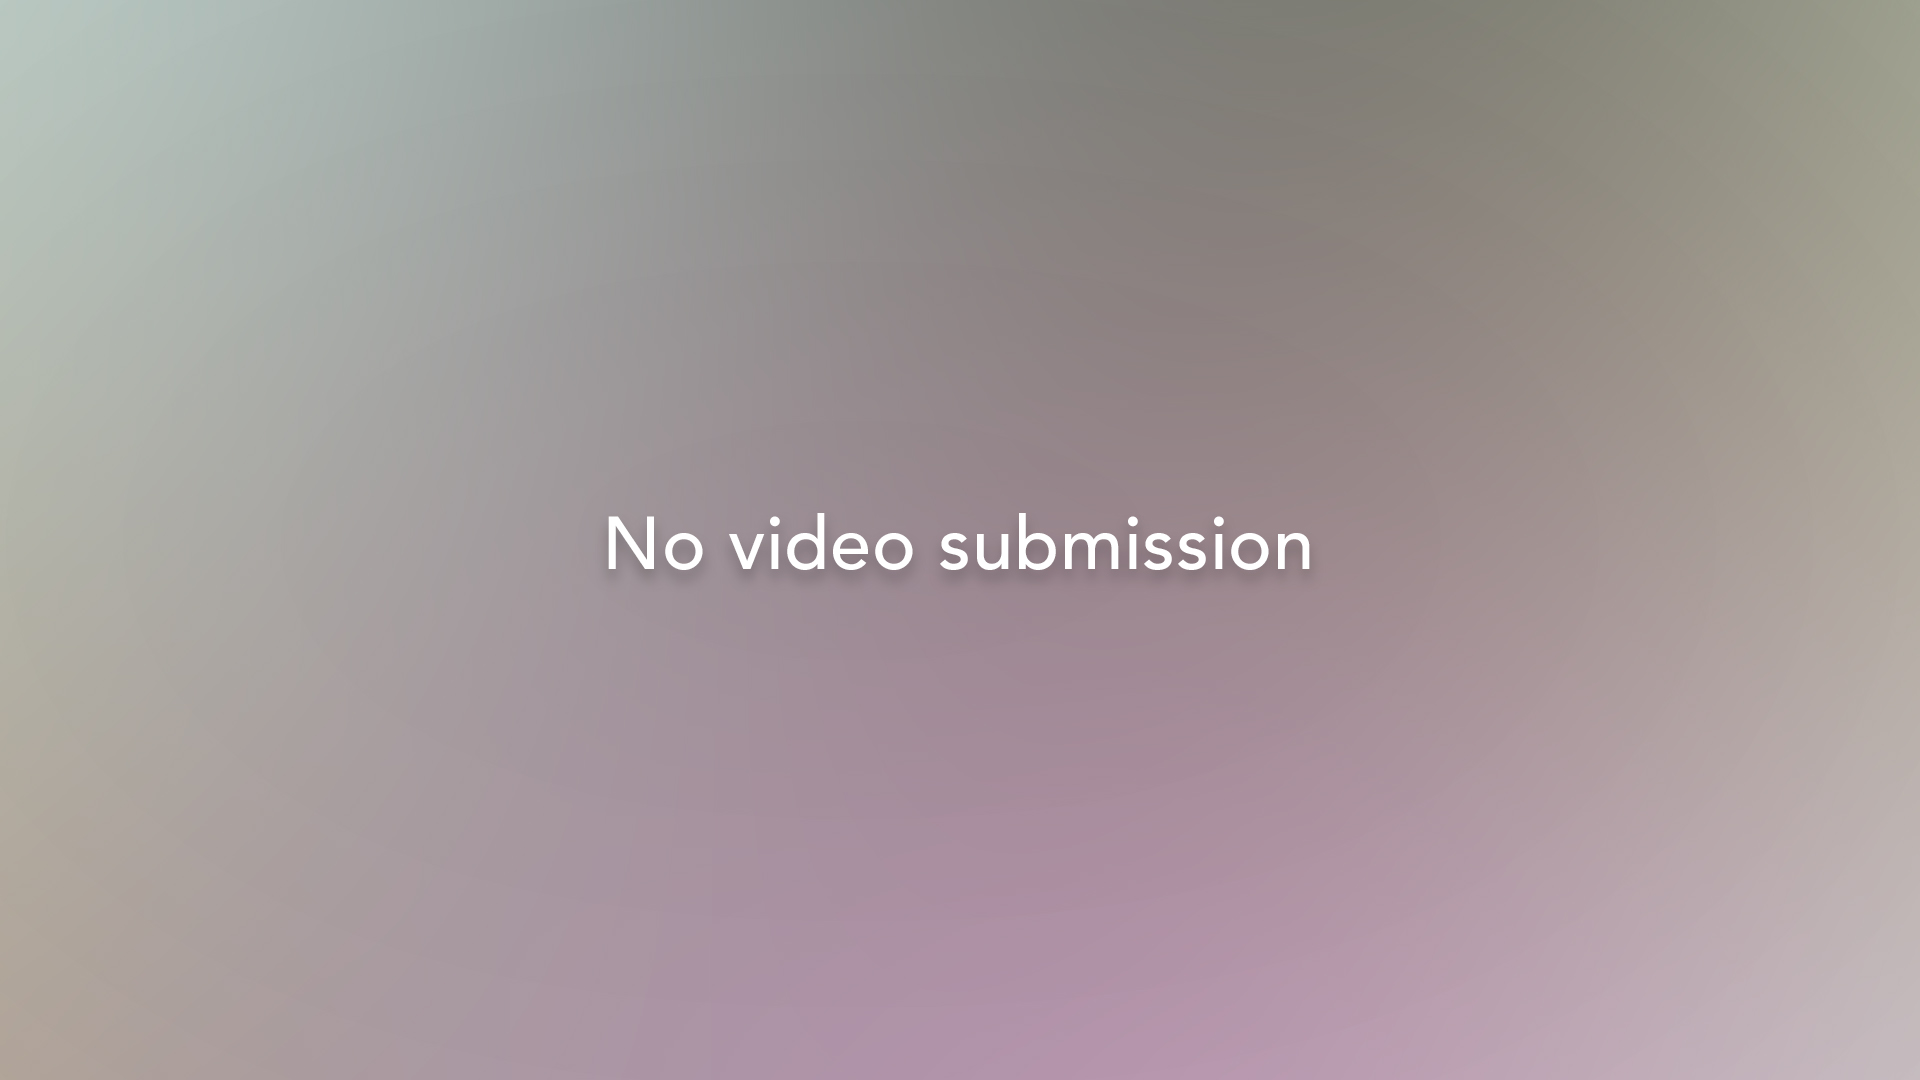 No video submission